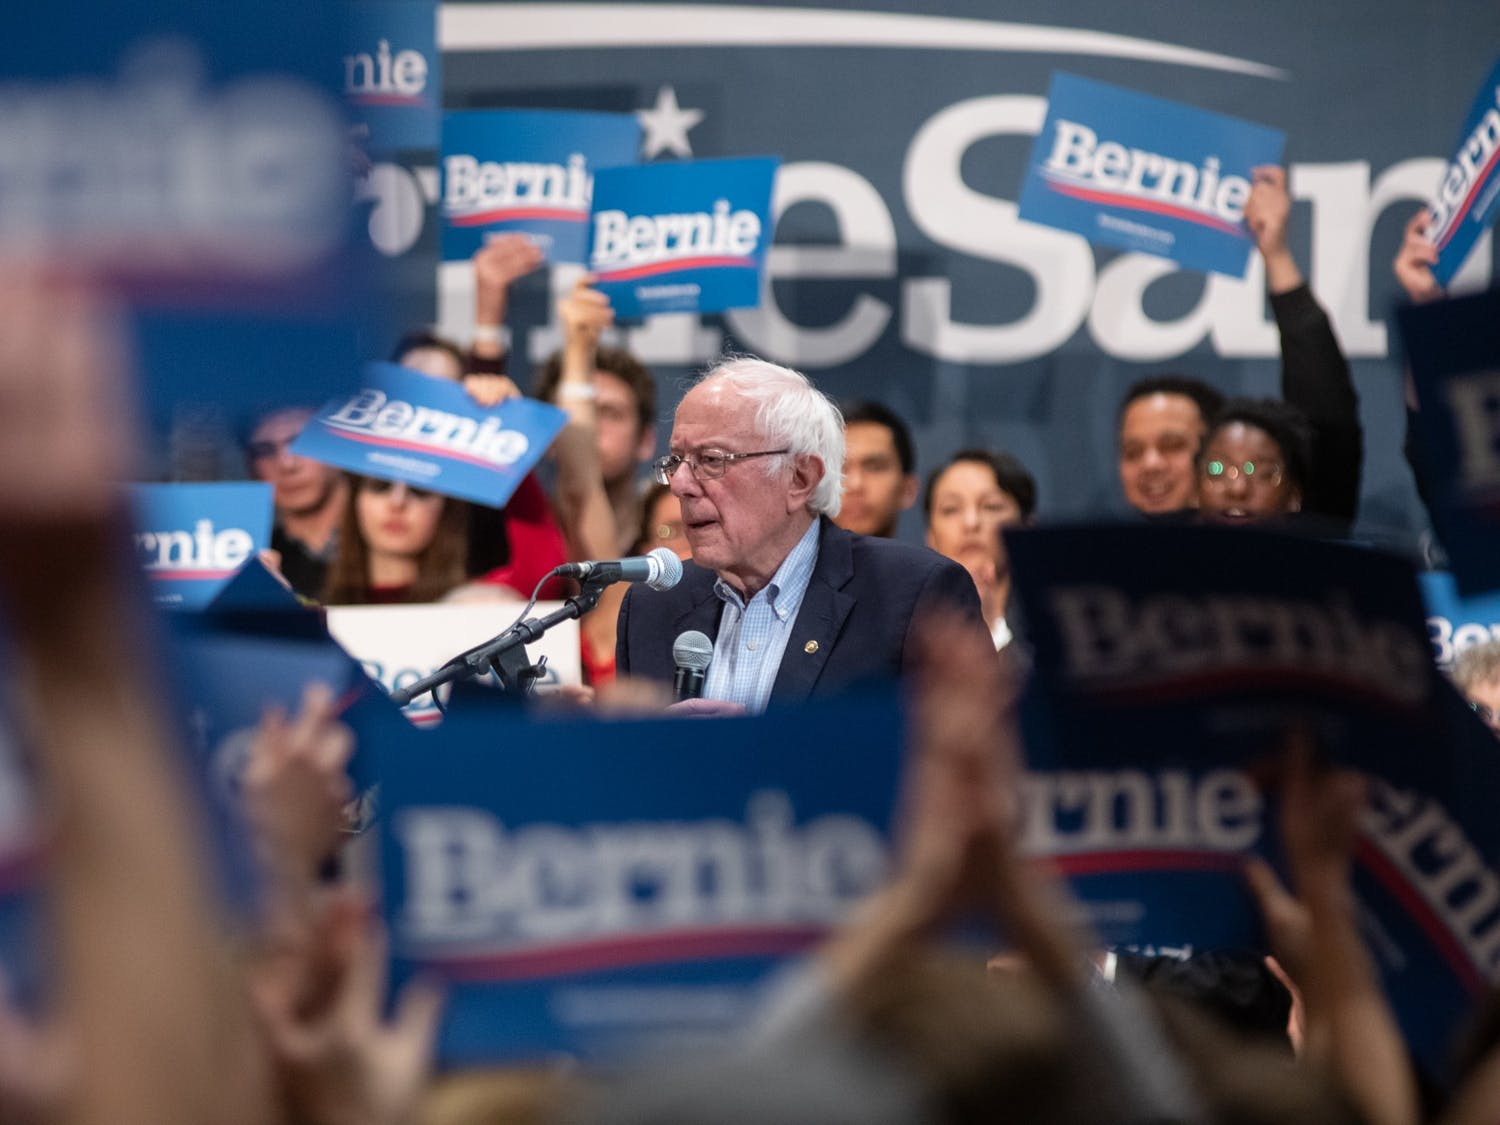 U.S. Sen. and presidential candidate Bernie Sanders brought his message of economic populism to Durham ahead of North Carolina's Super Tuesday primary. Sanders was joined by local community leaders and national campaign surrogates at a rally held in the Durham Convention Center on Friday morning.